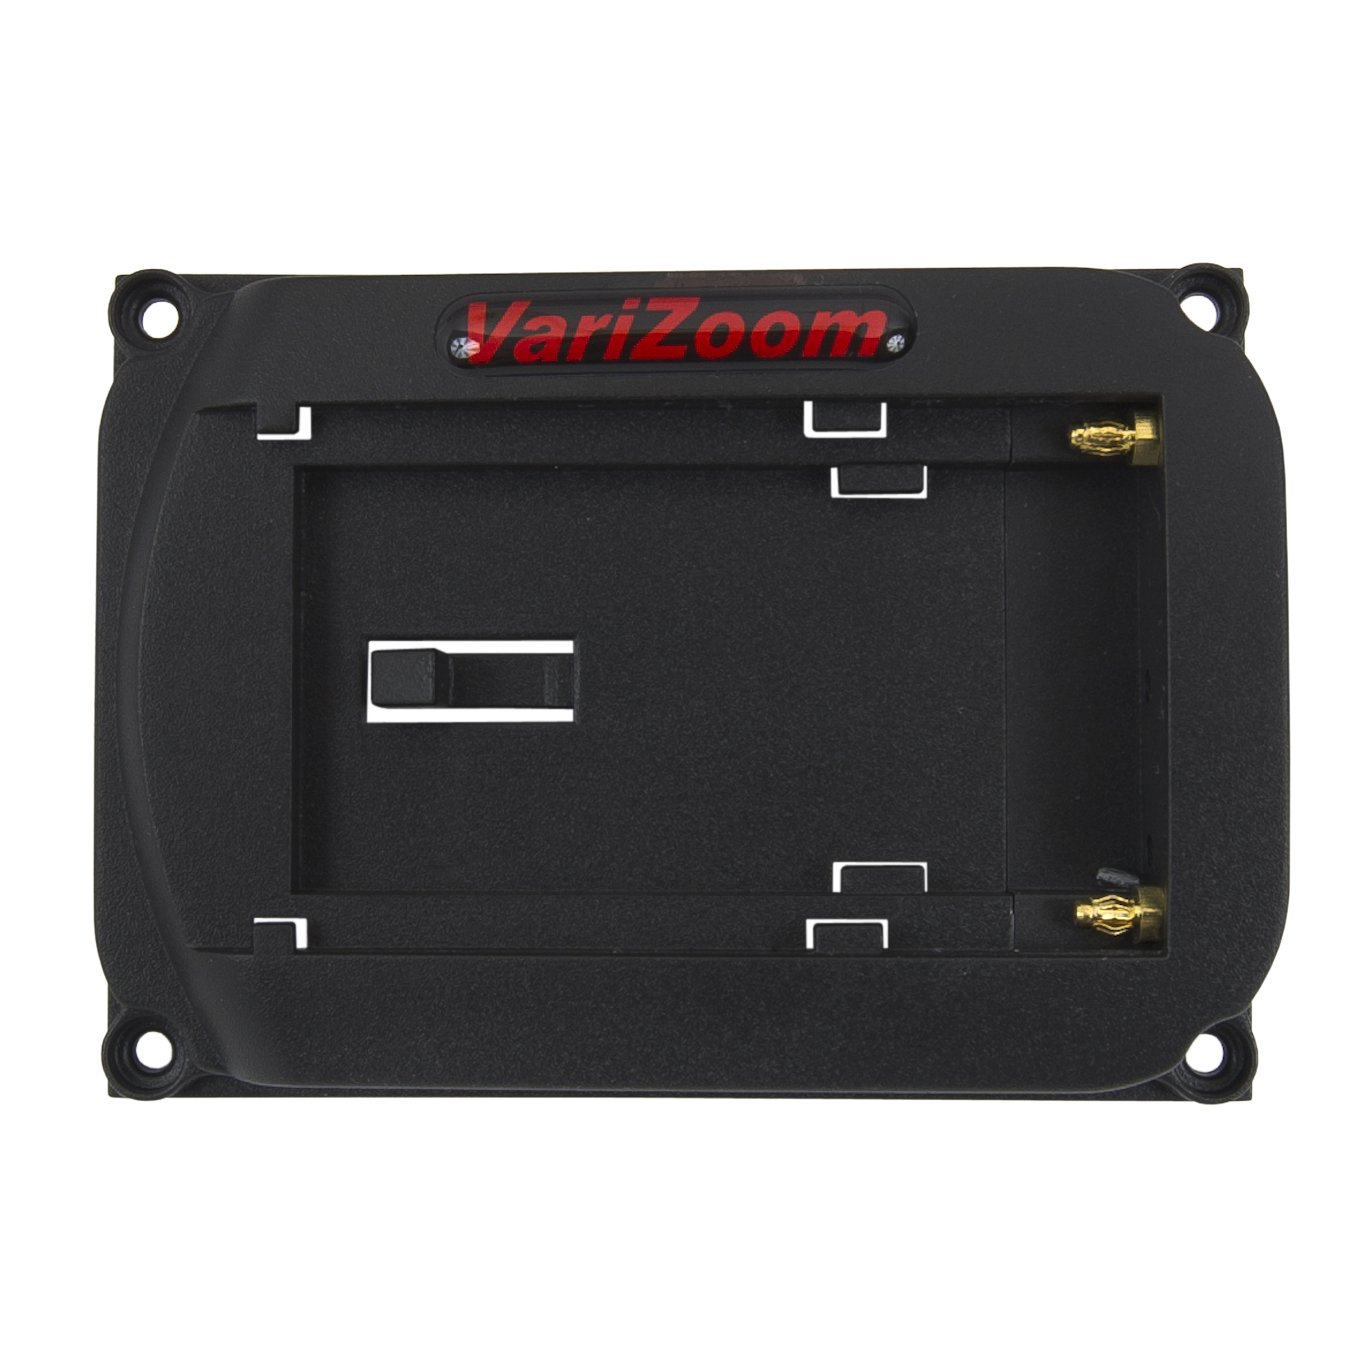 Varizoom VZMBPS Camcorder Battery Plate for M5 and M7 Monitors (Black) by VariZoom